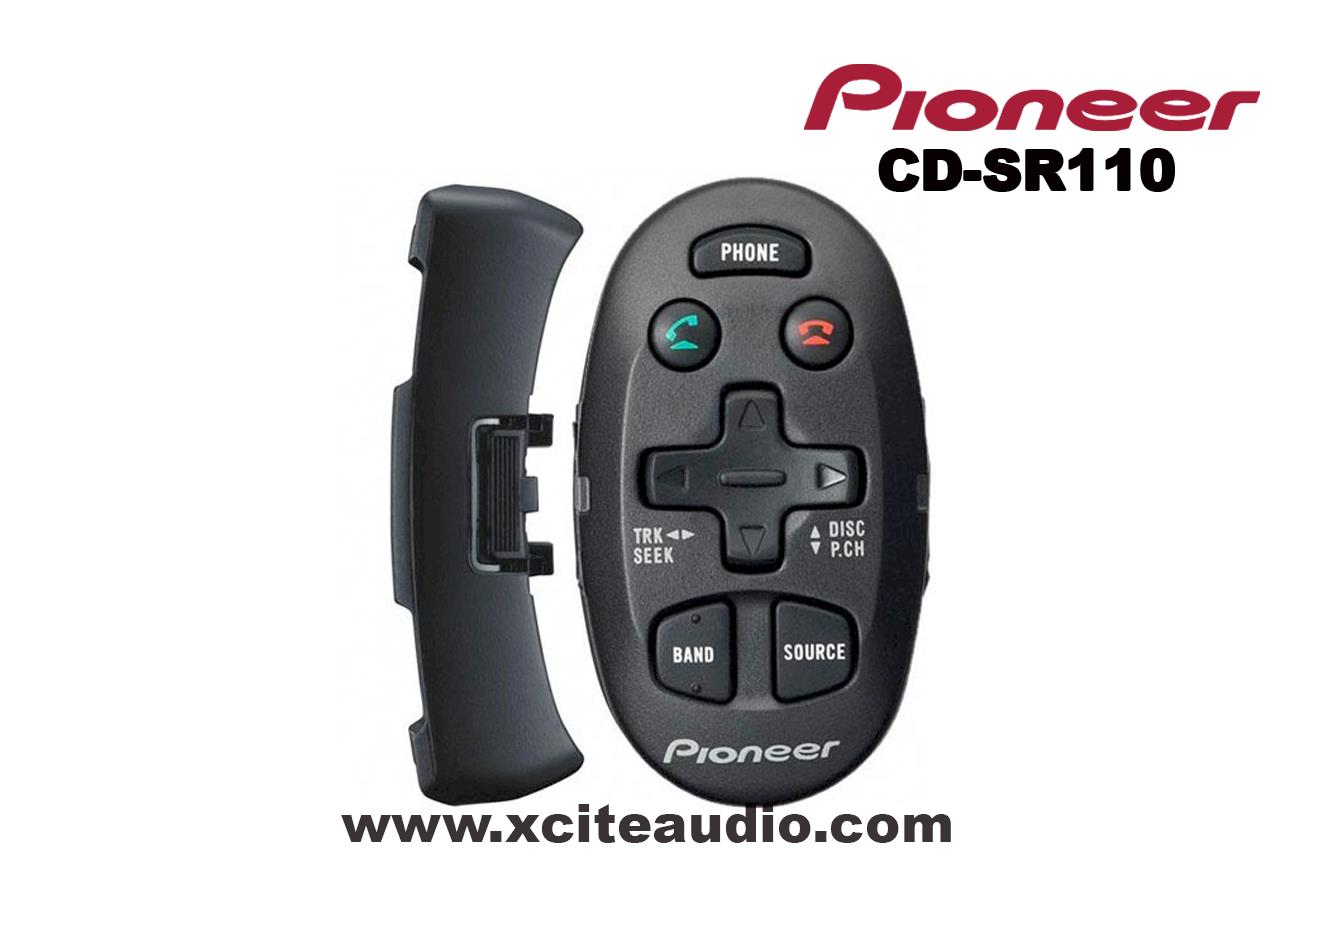 Pioneer CD-SR110 Steering Wheel Remote Control with Bluetooth operatio